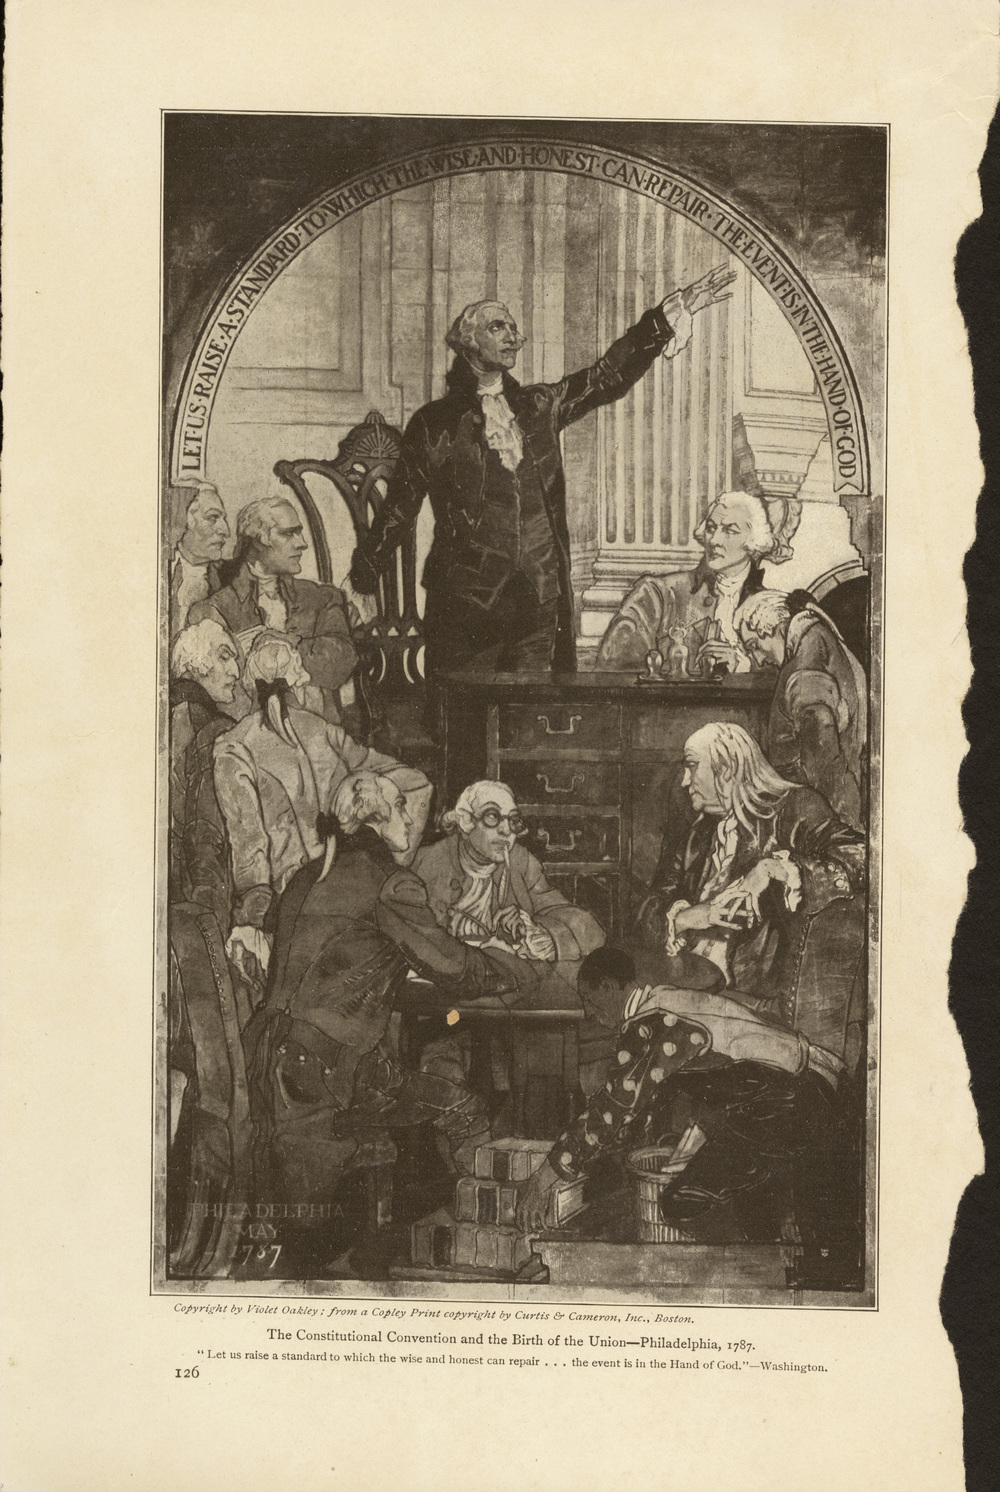 Violet Oakley, The Constitutional Convention and the Birth of the Union. Senate Murals, Pennsylvania Capitol Building. Dedicated in 1917. The images shown here were torn from a promotional booklet published by the State of Pennsylvania about Oakley's murals.